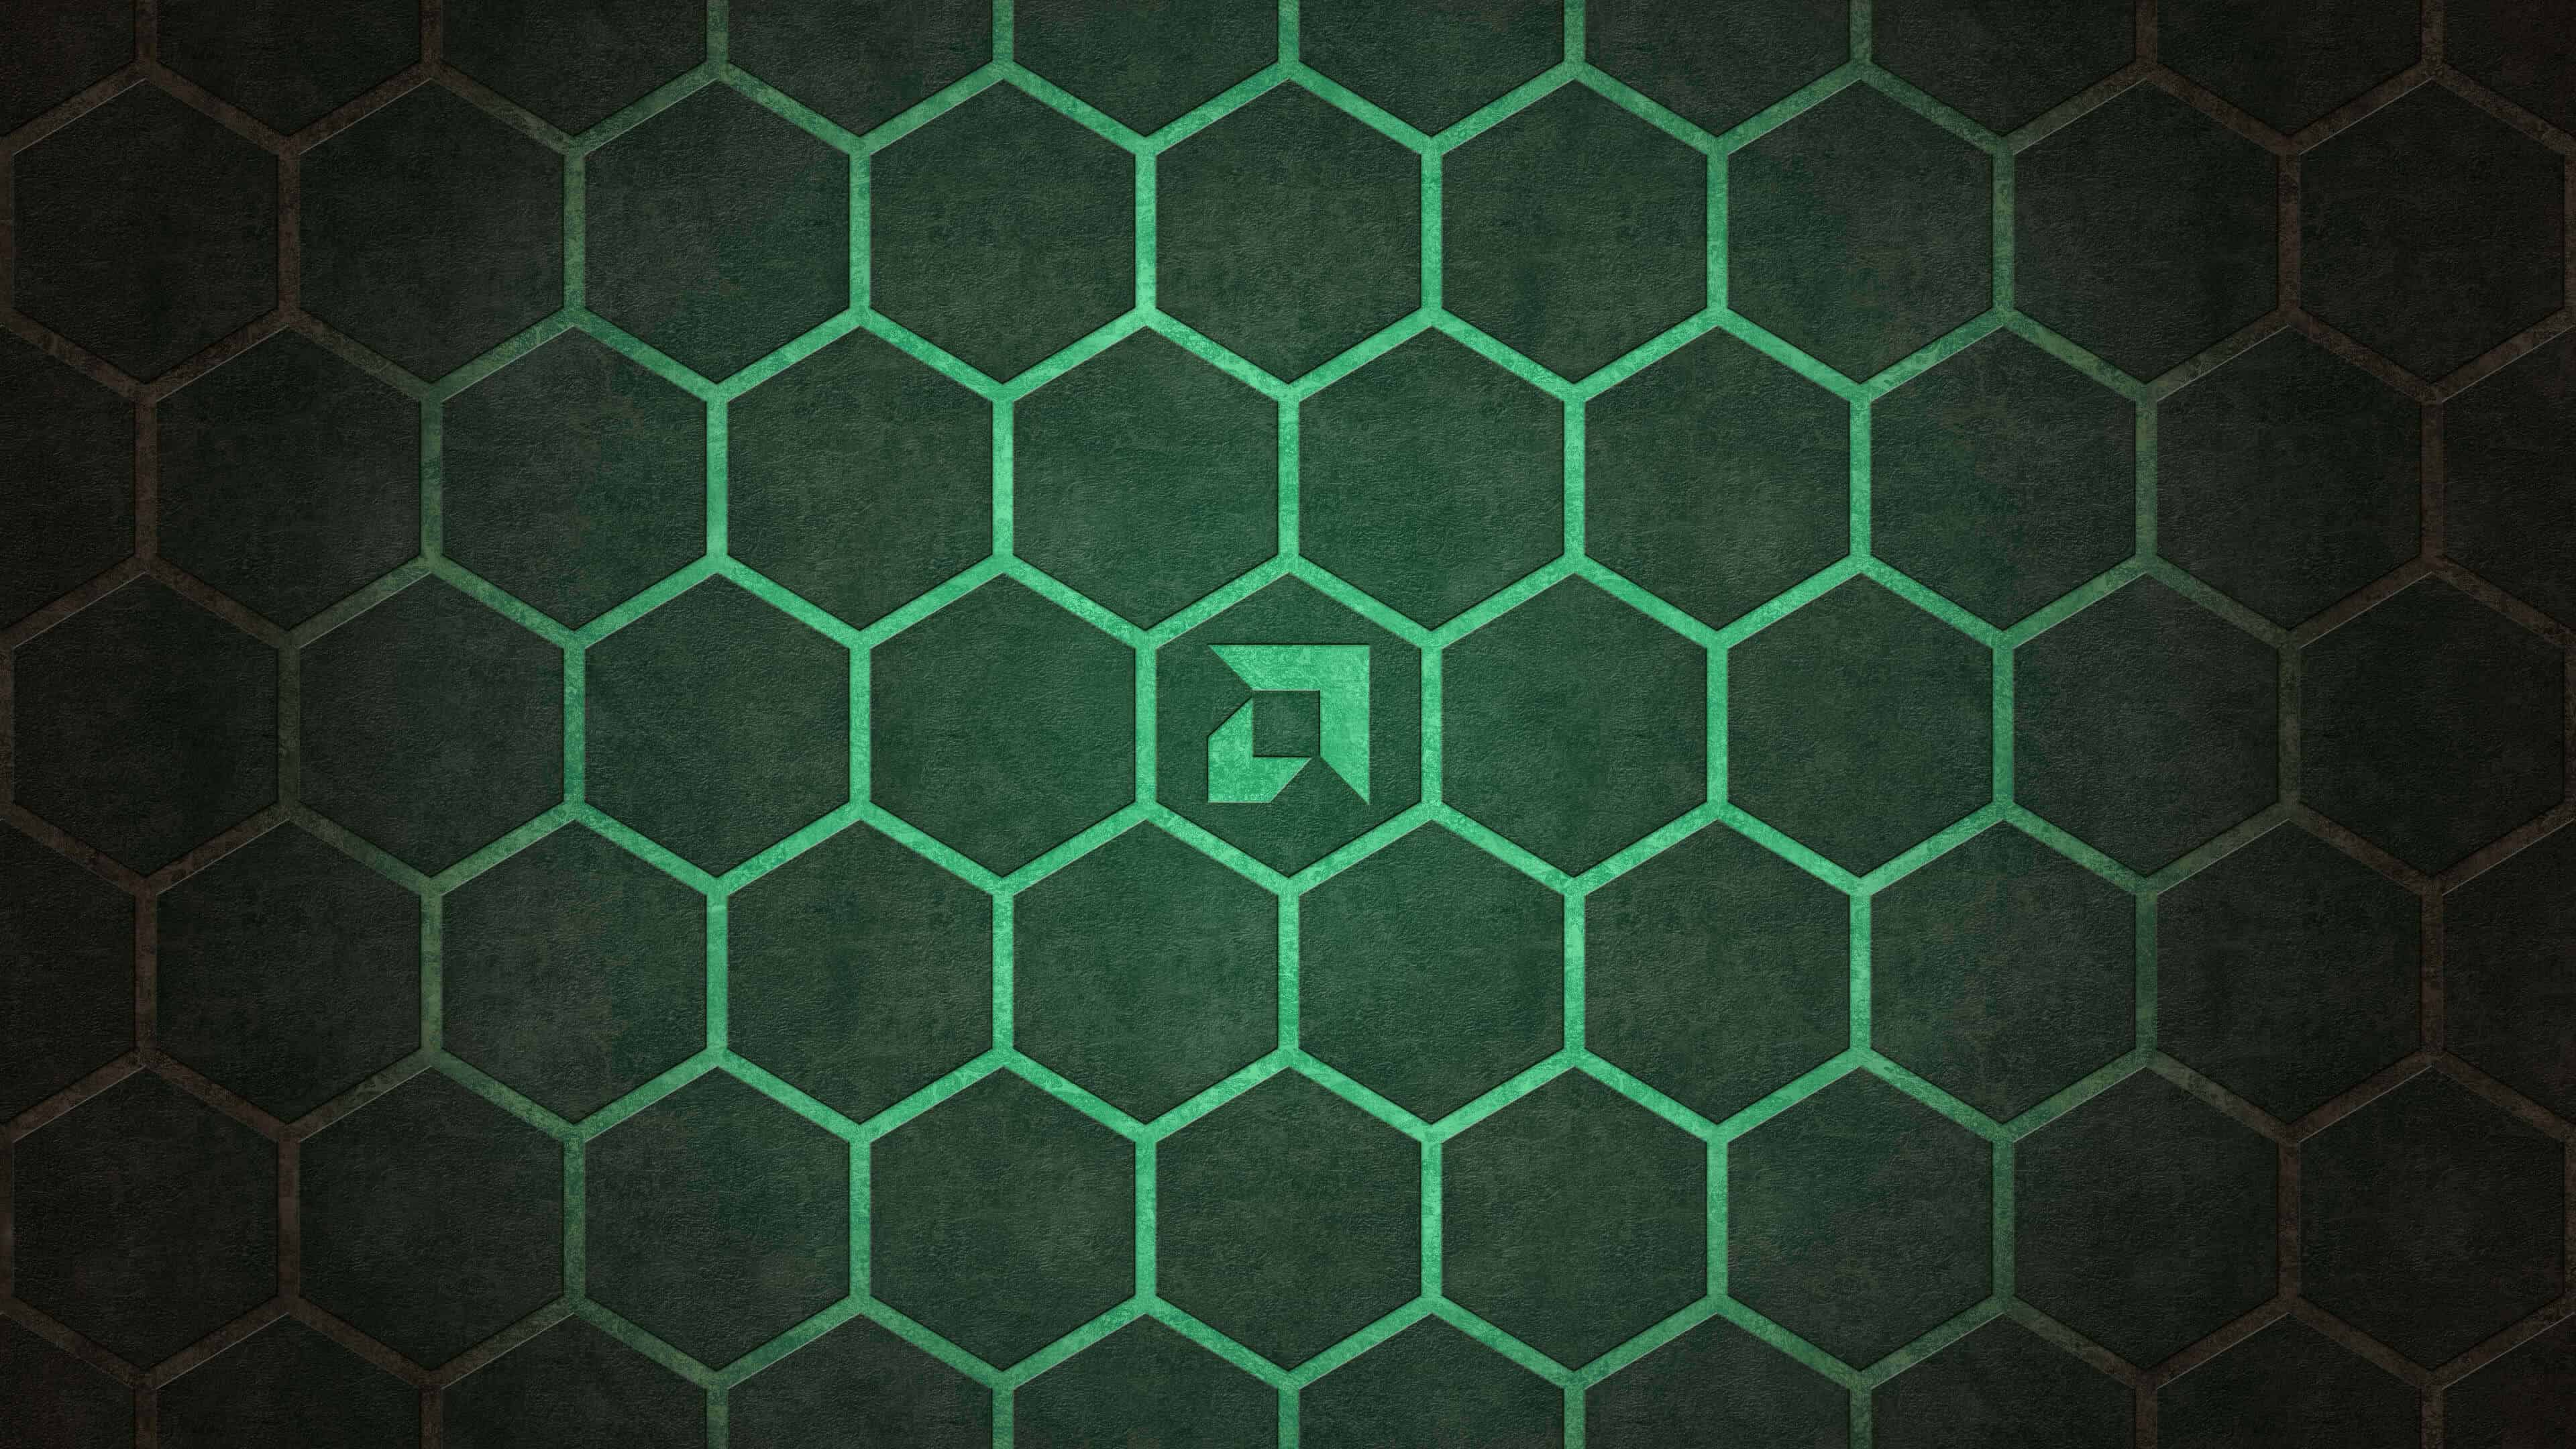 amd hexagon background uhd 4k wallpaper